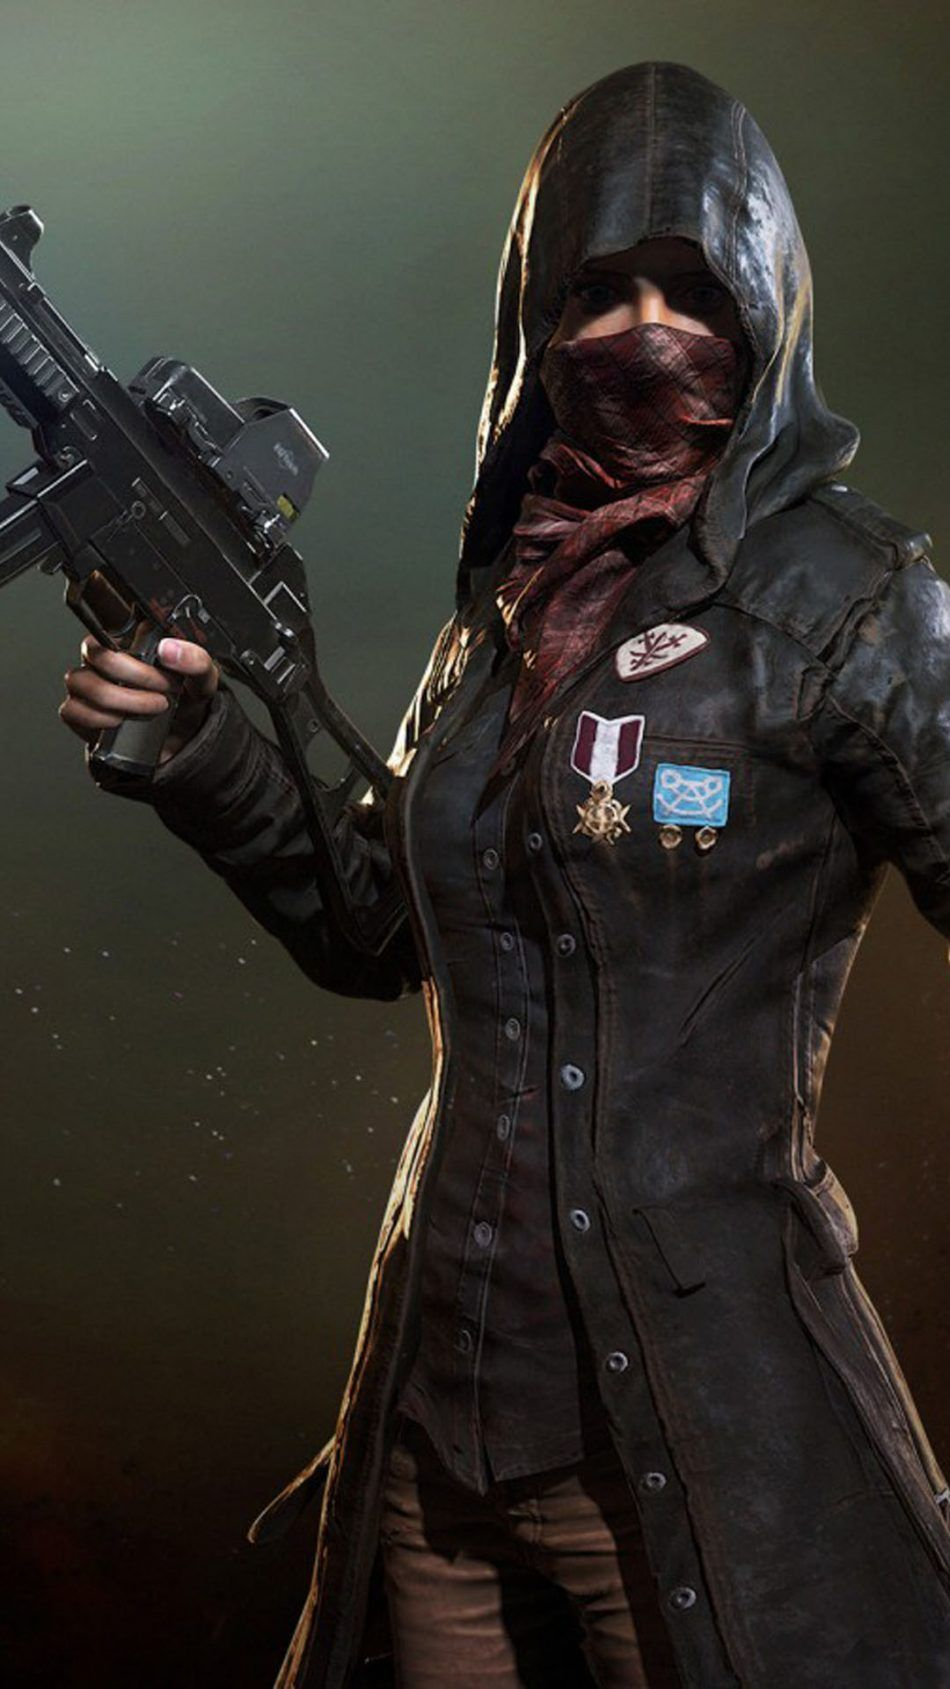 PUBG Female Player In Mask Blue wallpaper iphone, Game